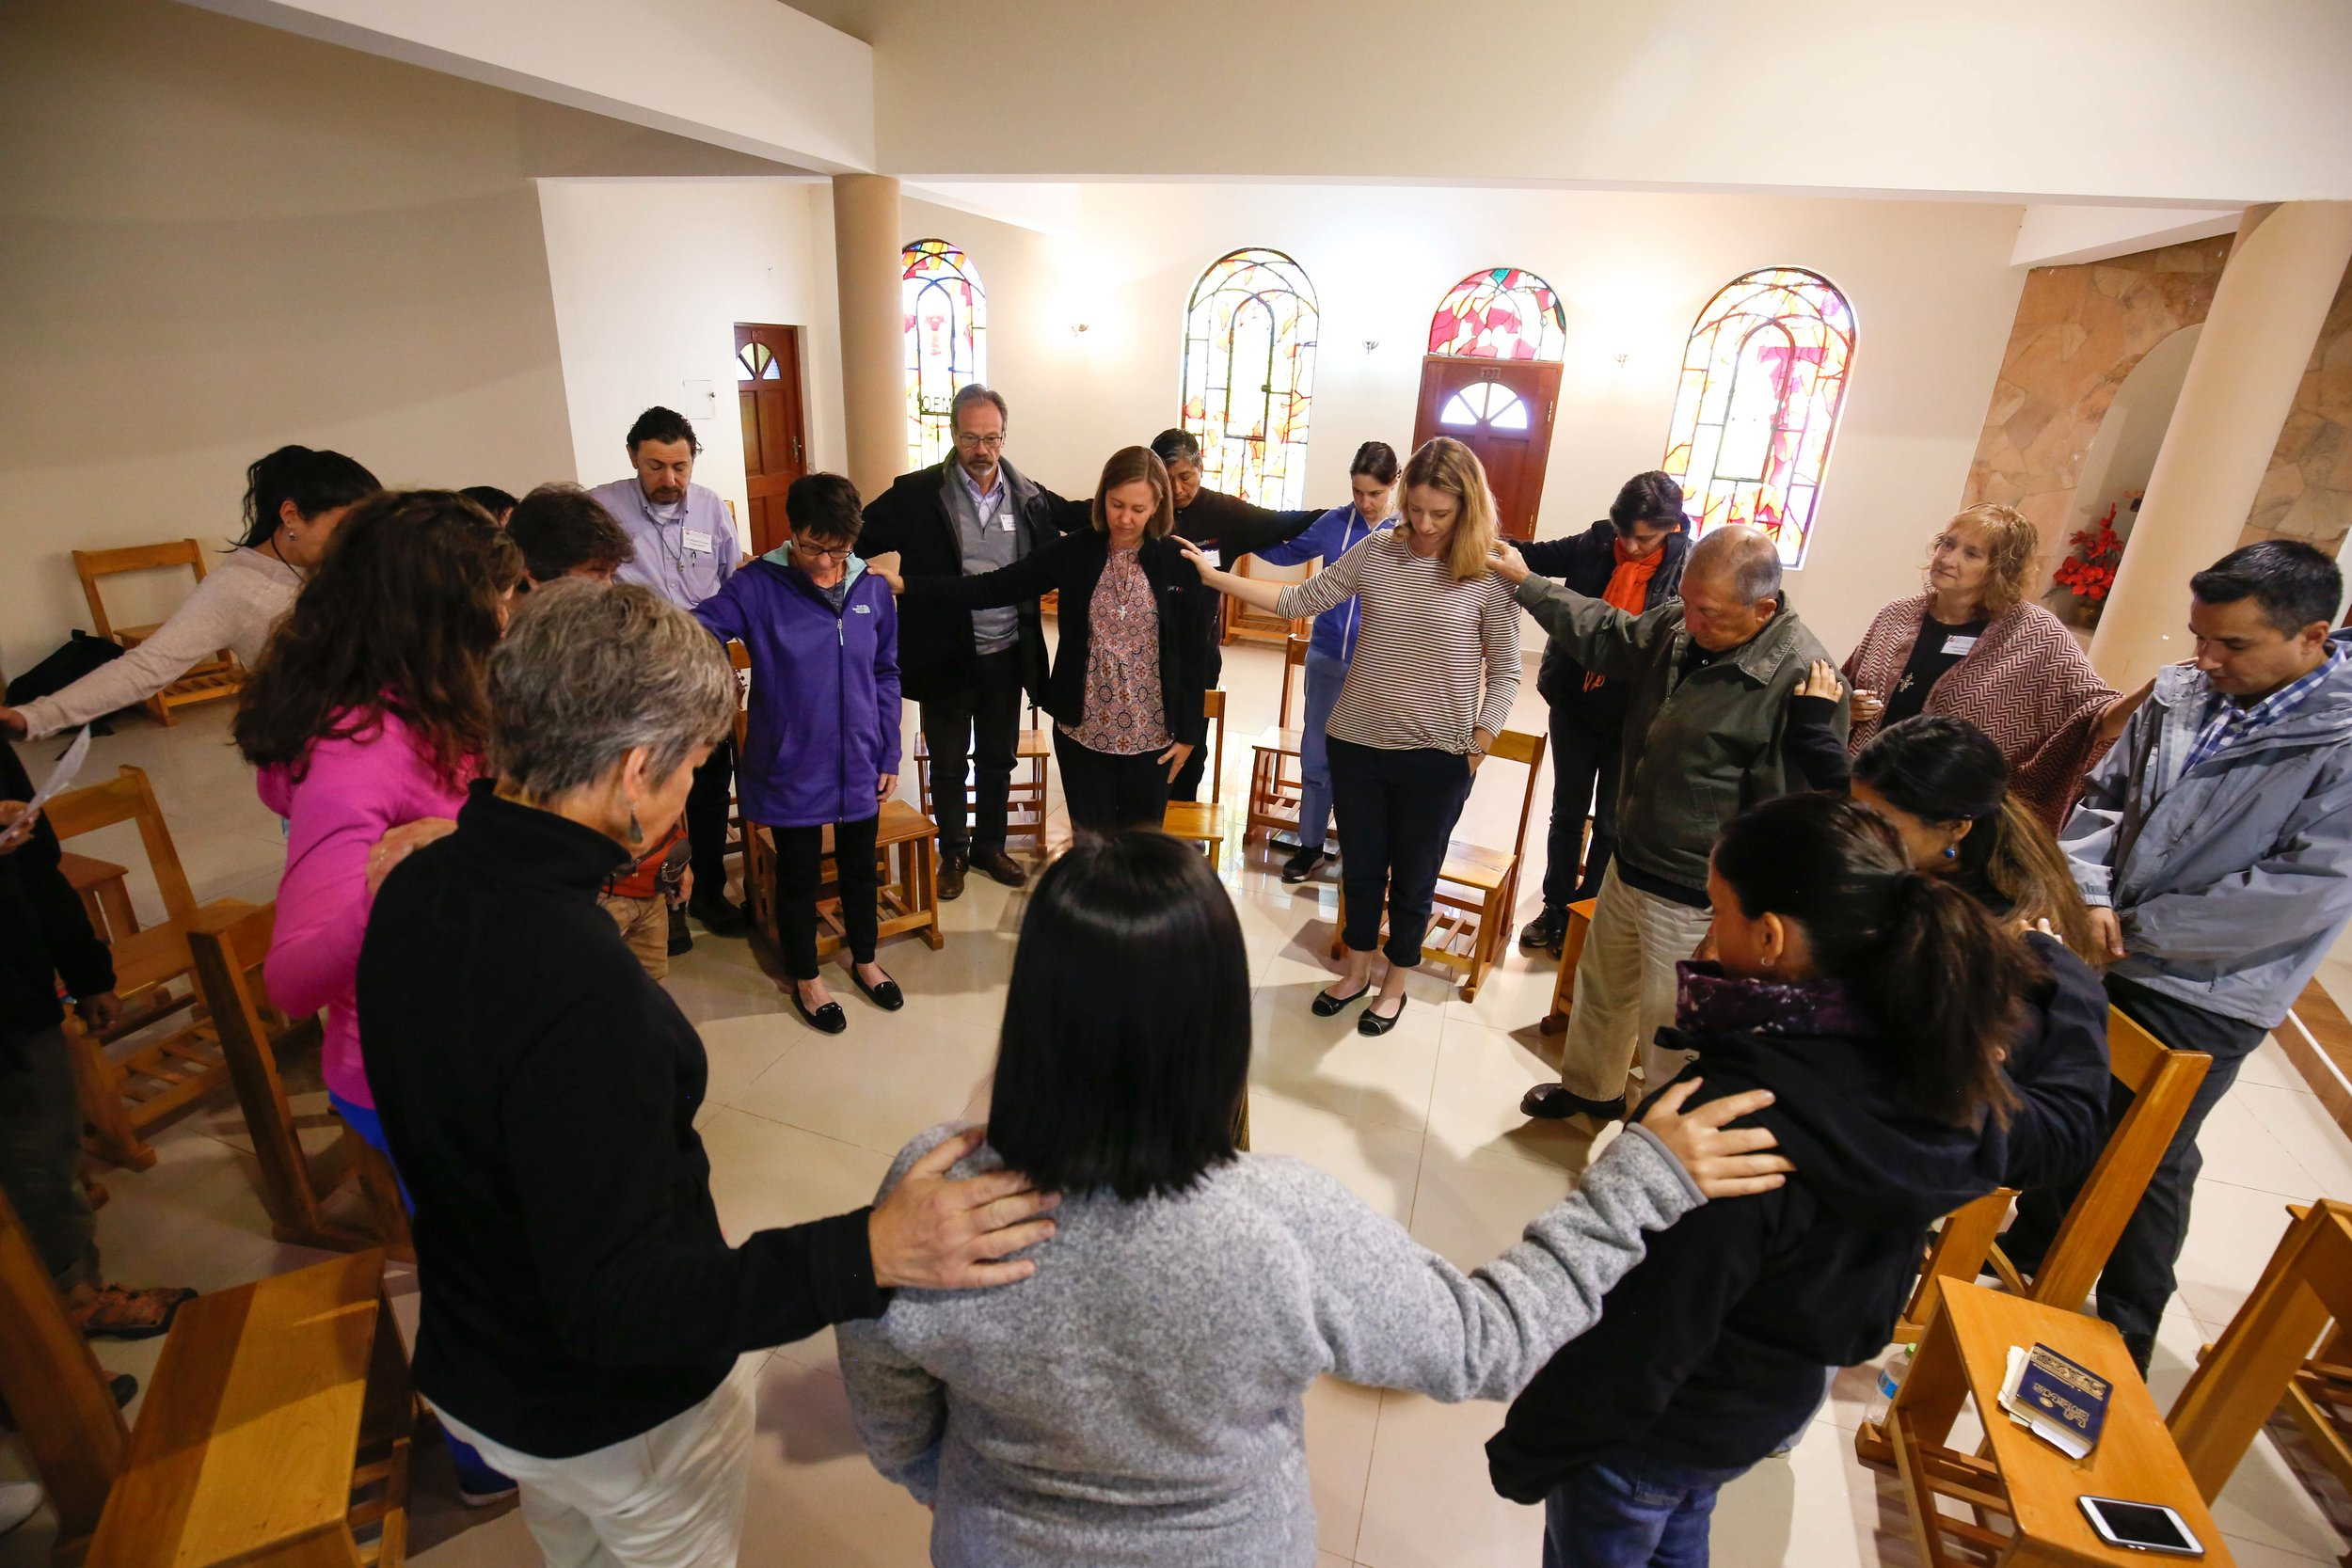 Missioners gather in prayer before their work begins at the hospital each day